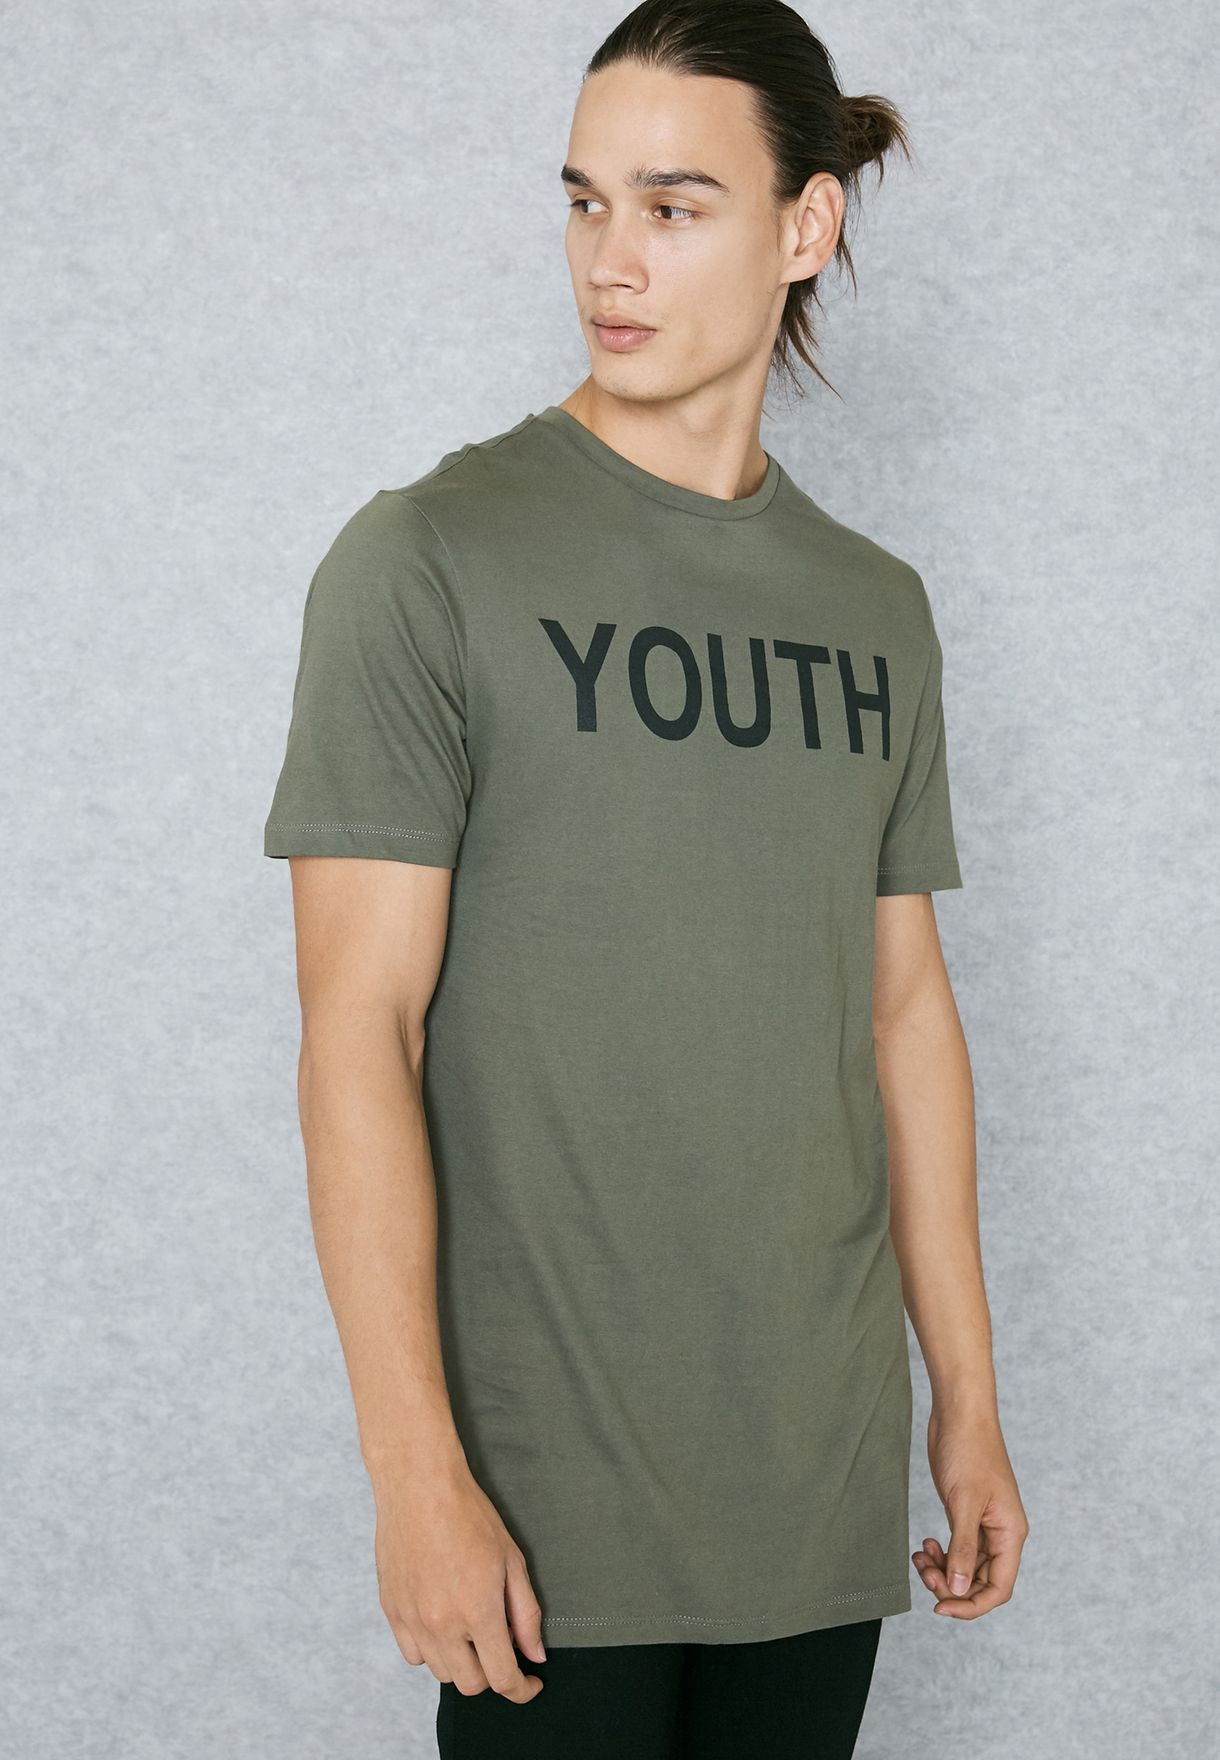 Youth Print T-Shirt